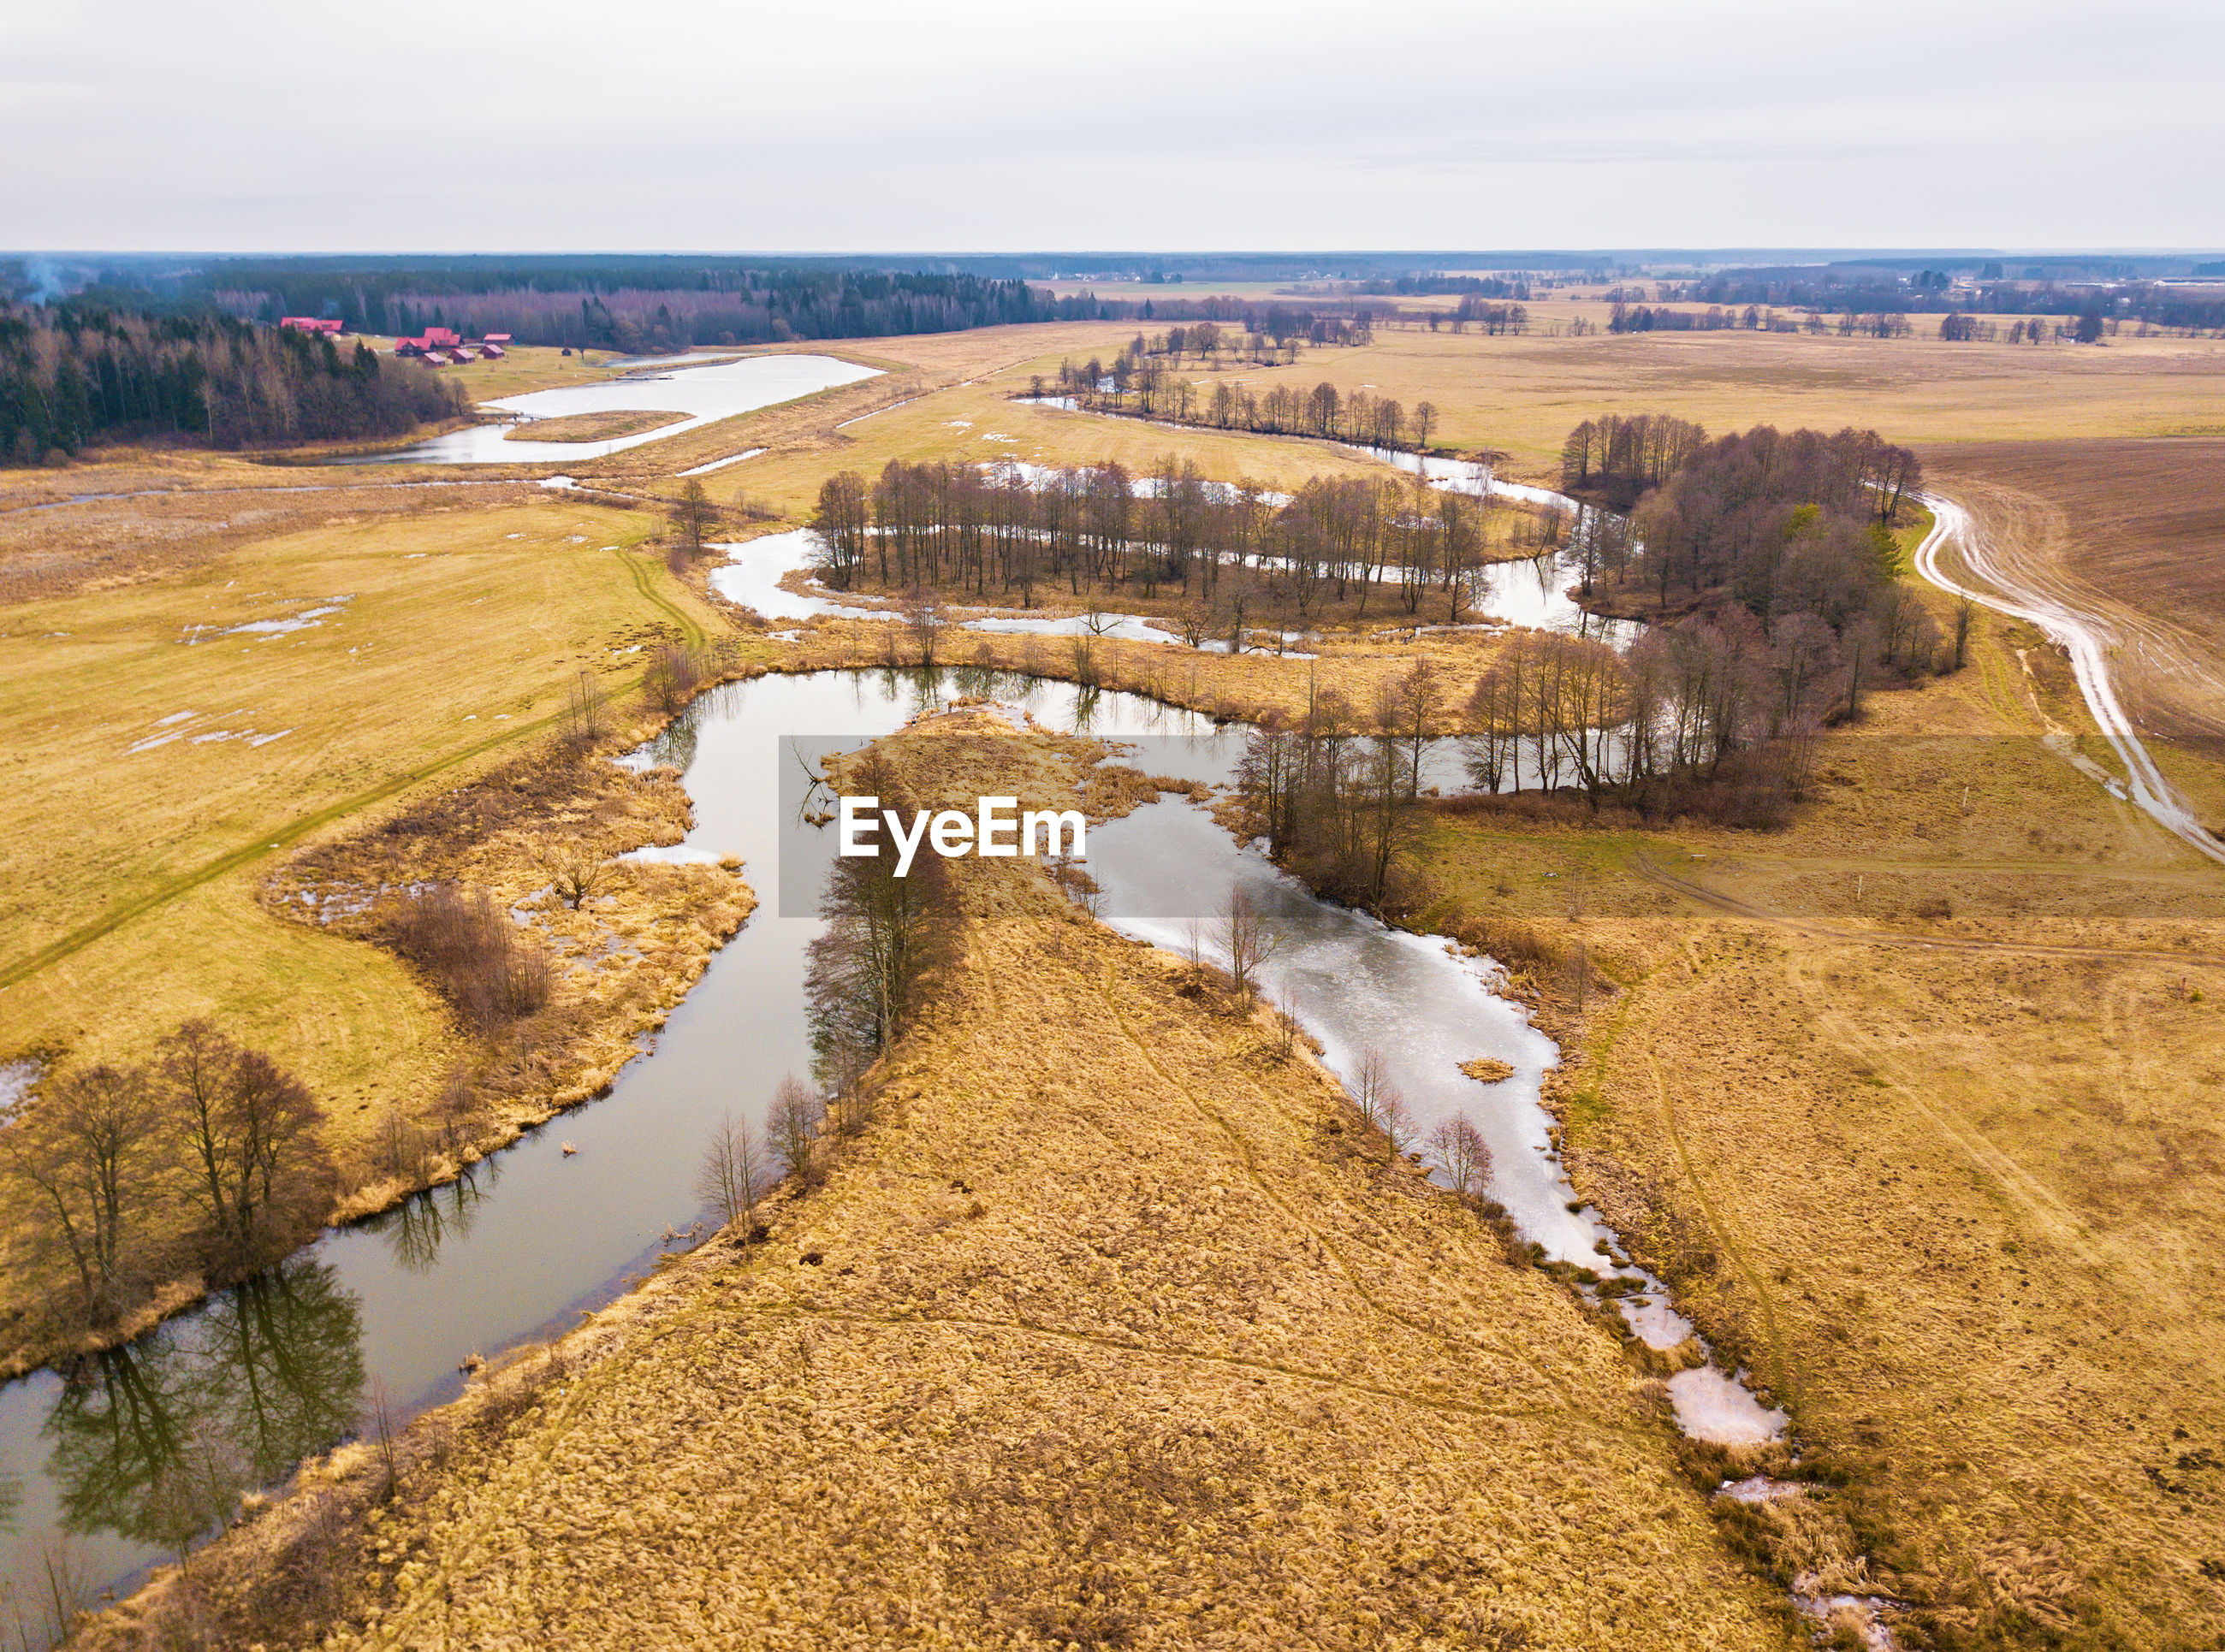 HIGH ANGLE VIEW OF RIVER AMIDST LANDSCAPE